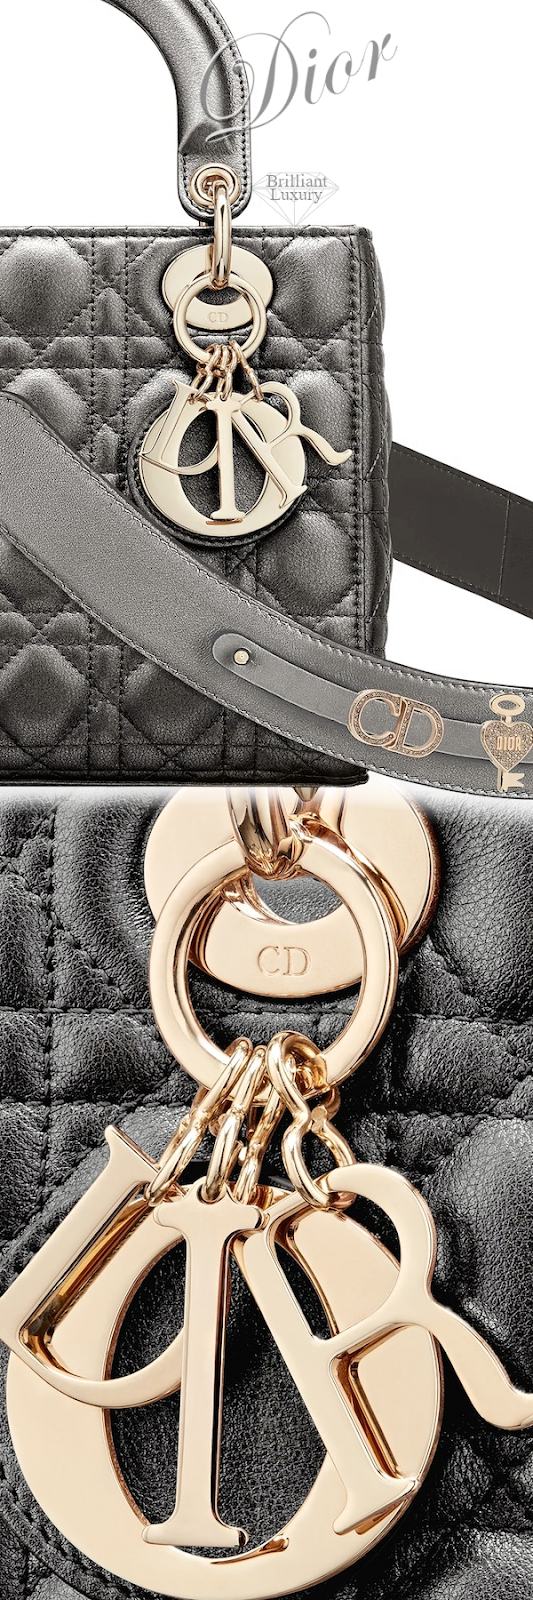 Dior Lady Dior Gunmetal-Colored My ABCDIOR Calfskin Bag #brilliantluxury